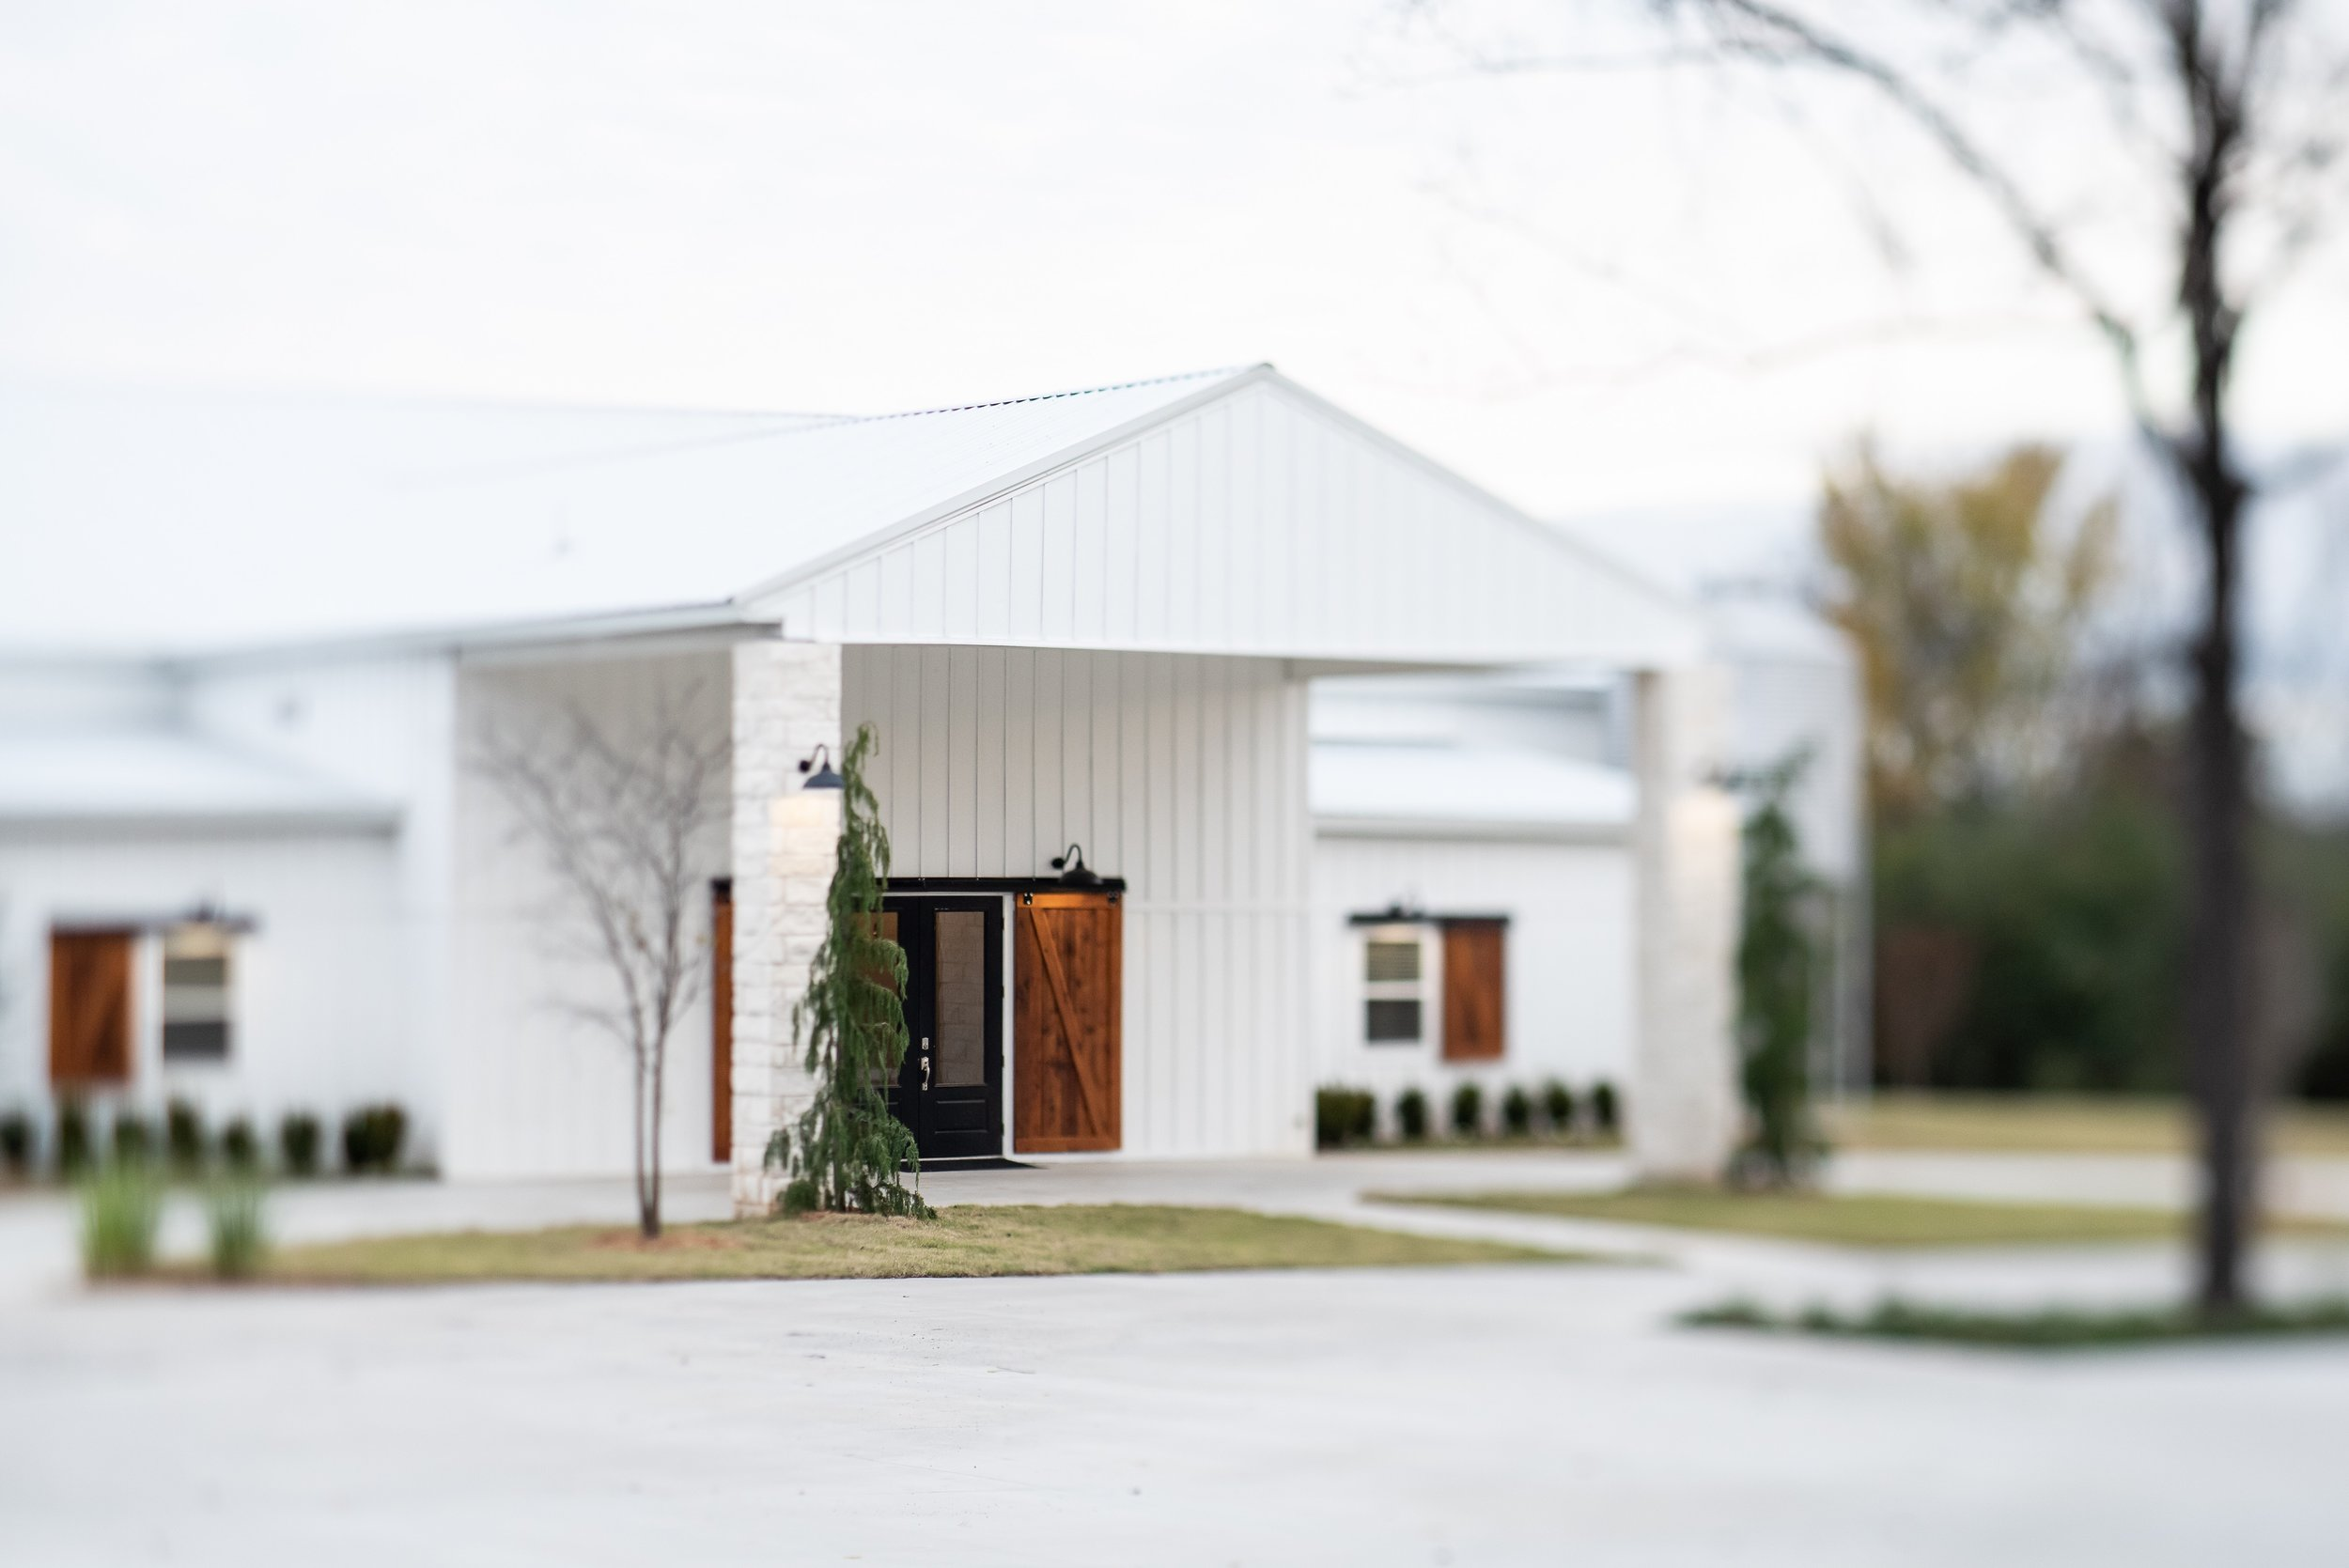 810 Ranch - Wedding Venue - Corporate Event Space - Tulsa Oklahoma - Muskogee - Modern Farmhouse